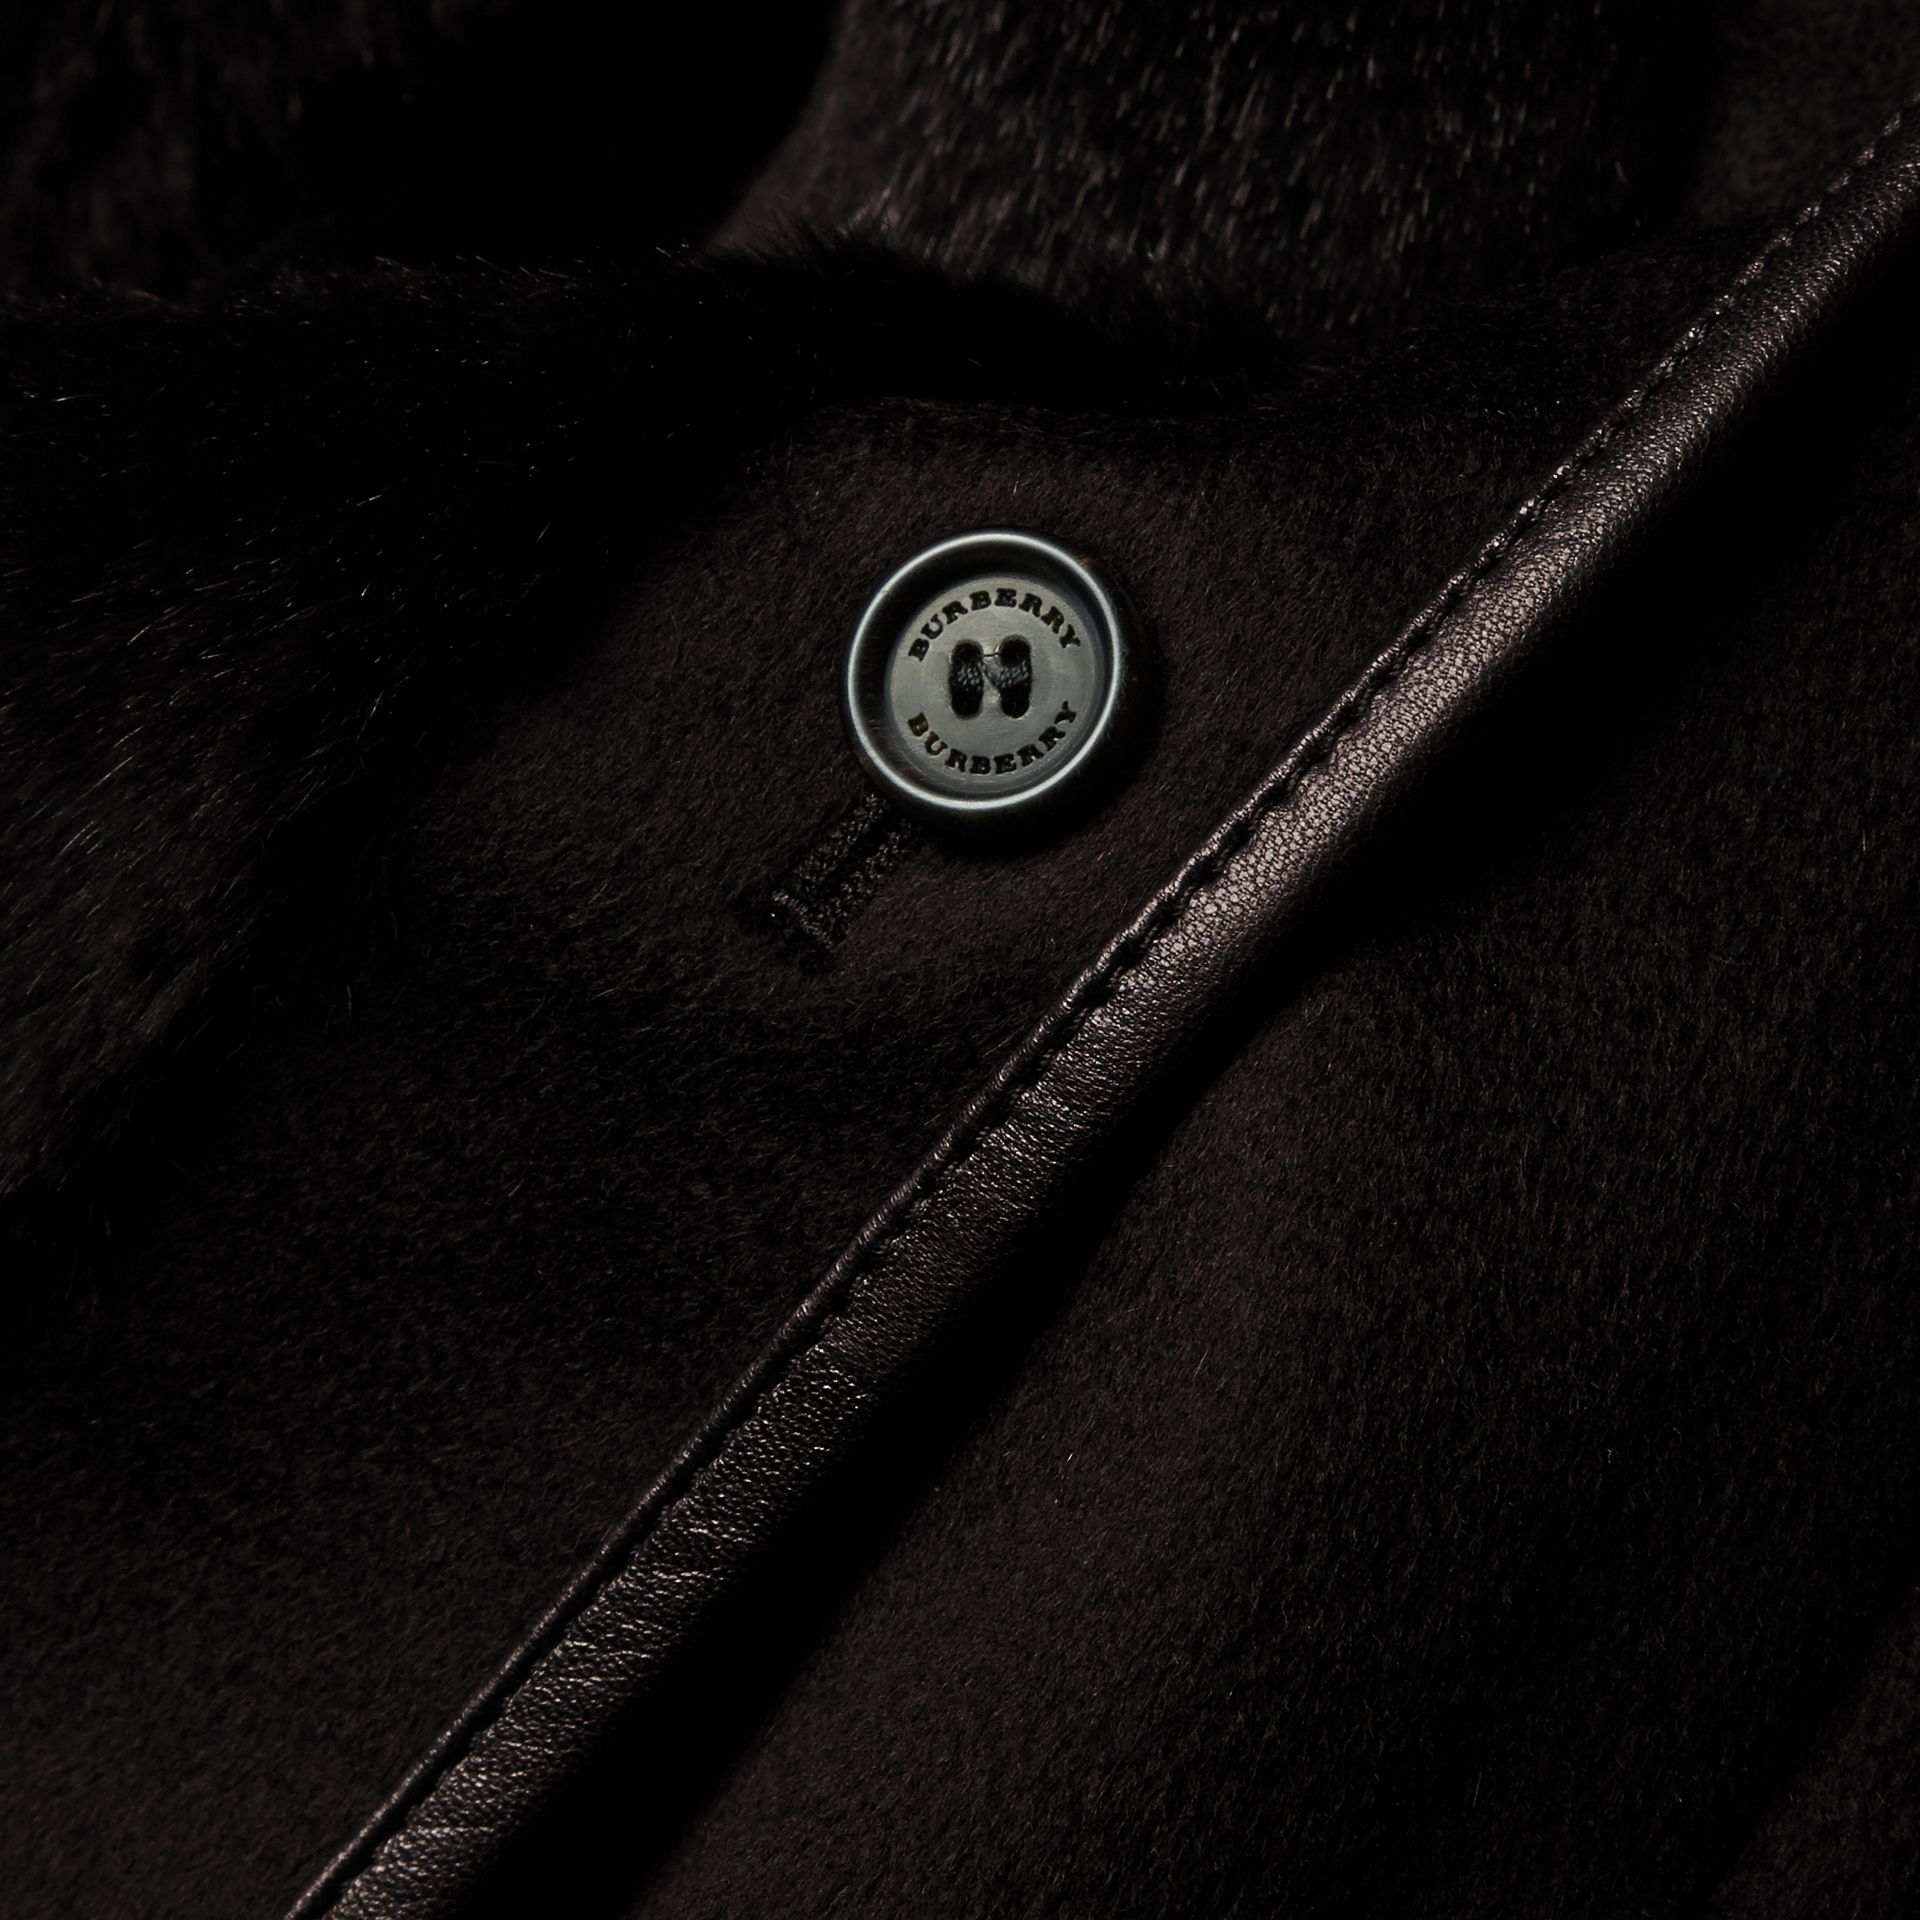 Black Fox and Shearling Trim Cashmere Parka with Fur Liner - gallery image 2